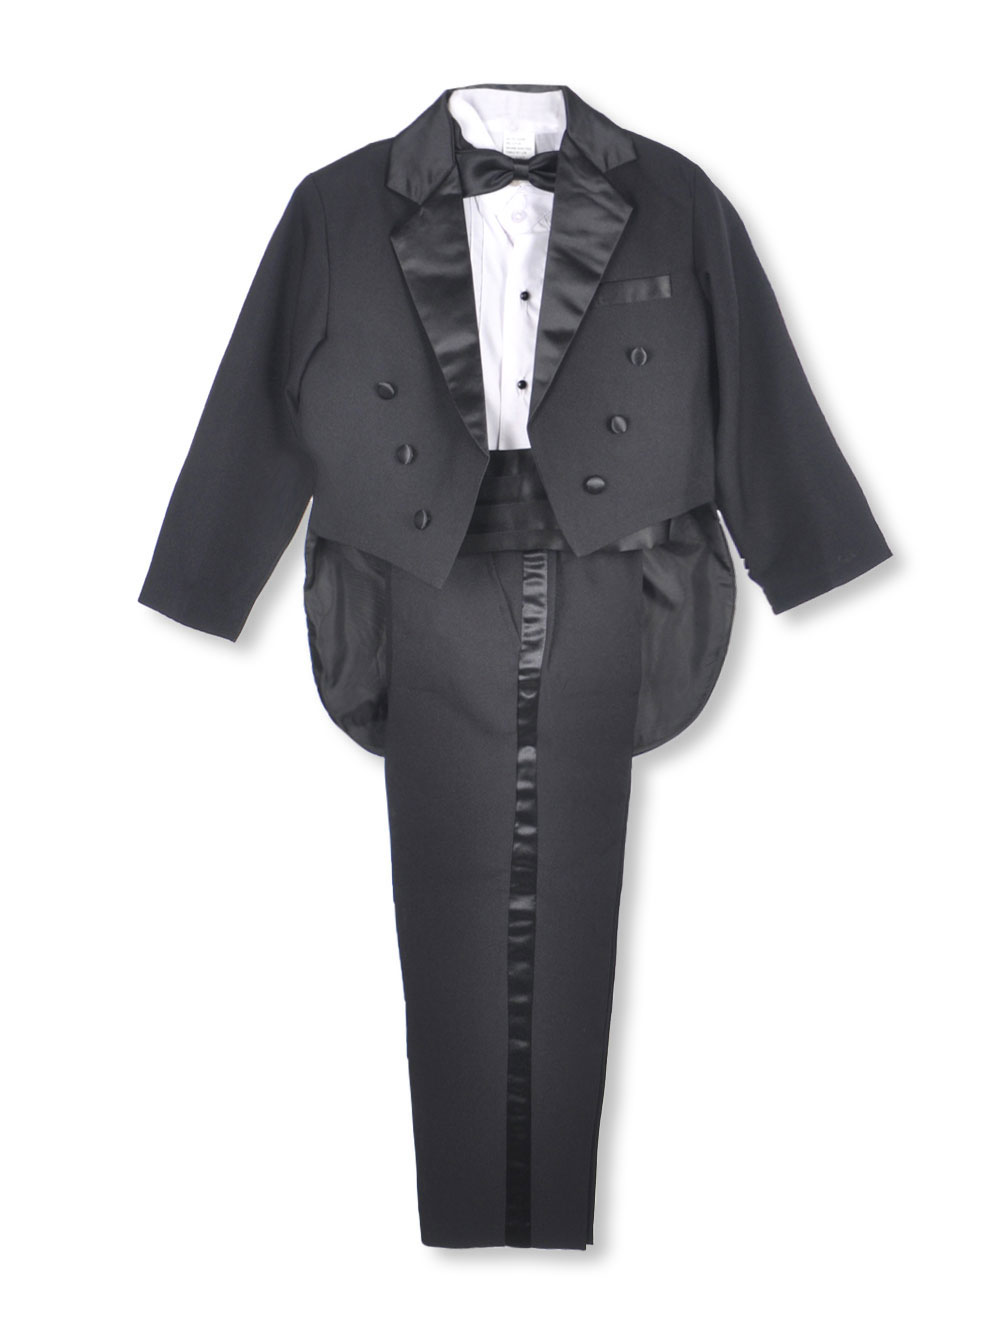 Kaifer Boys Kaifer 5-Piece Tuxedo with Tails (Sizes 8 - 20) at Sears.com